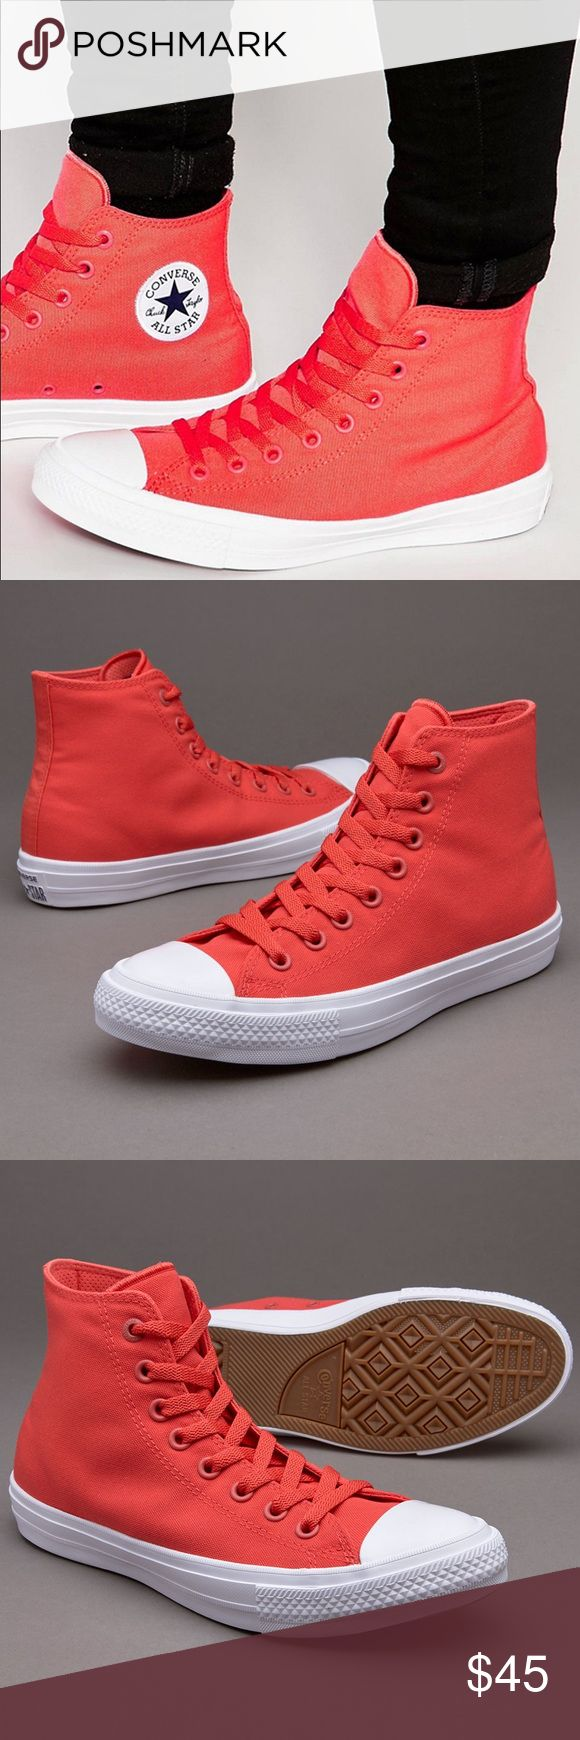 ❗️1 HOUR SALE converse Chuck Taylor II size 8.5 Brand new without box. Women's size 8.5 Converse Shoes Sneakers